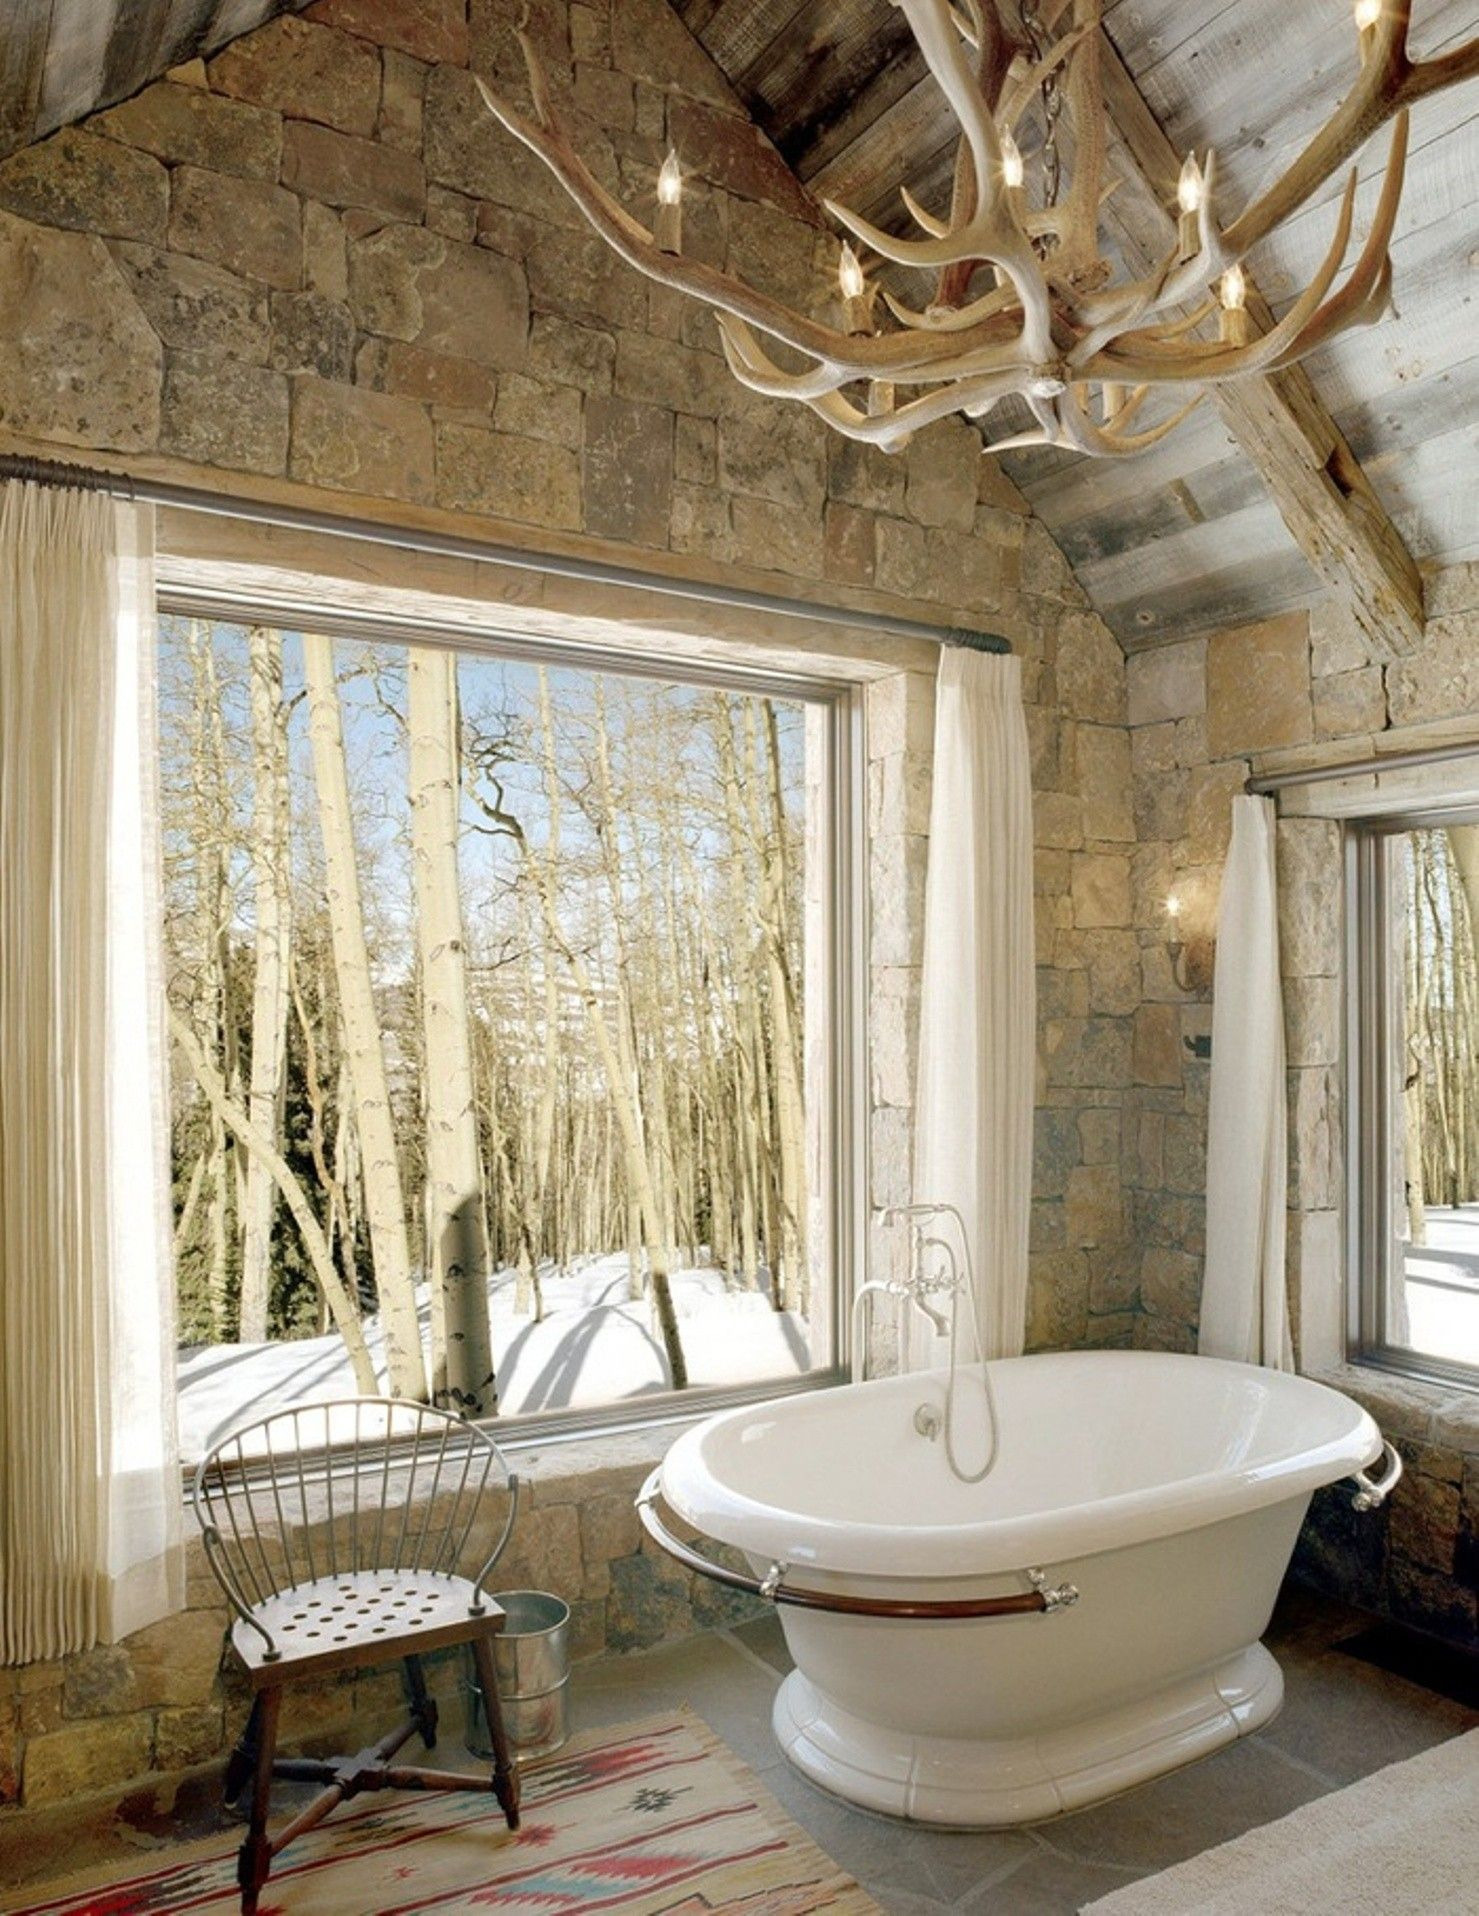 Antler Bathroom Decor Unique Pin by Diana Kinyon On Decorating Tips